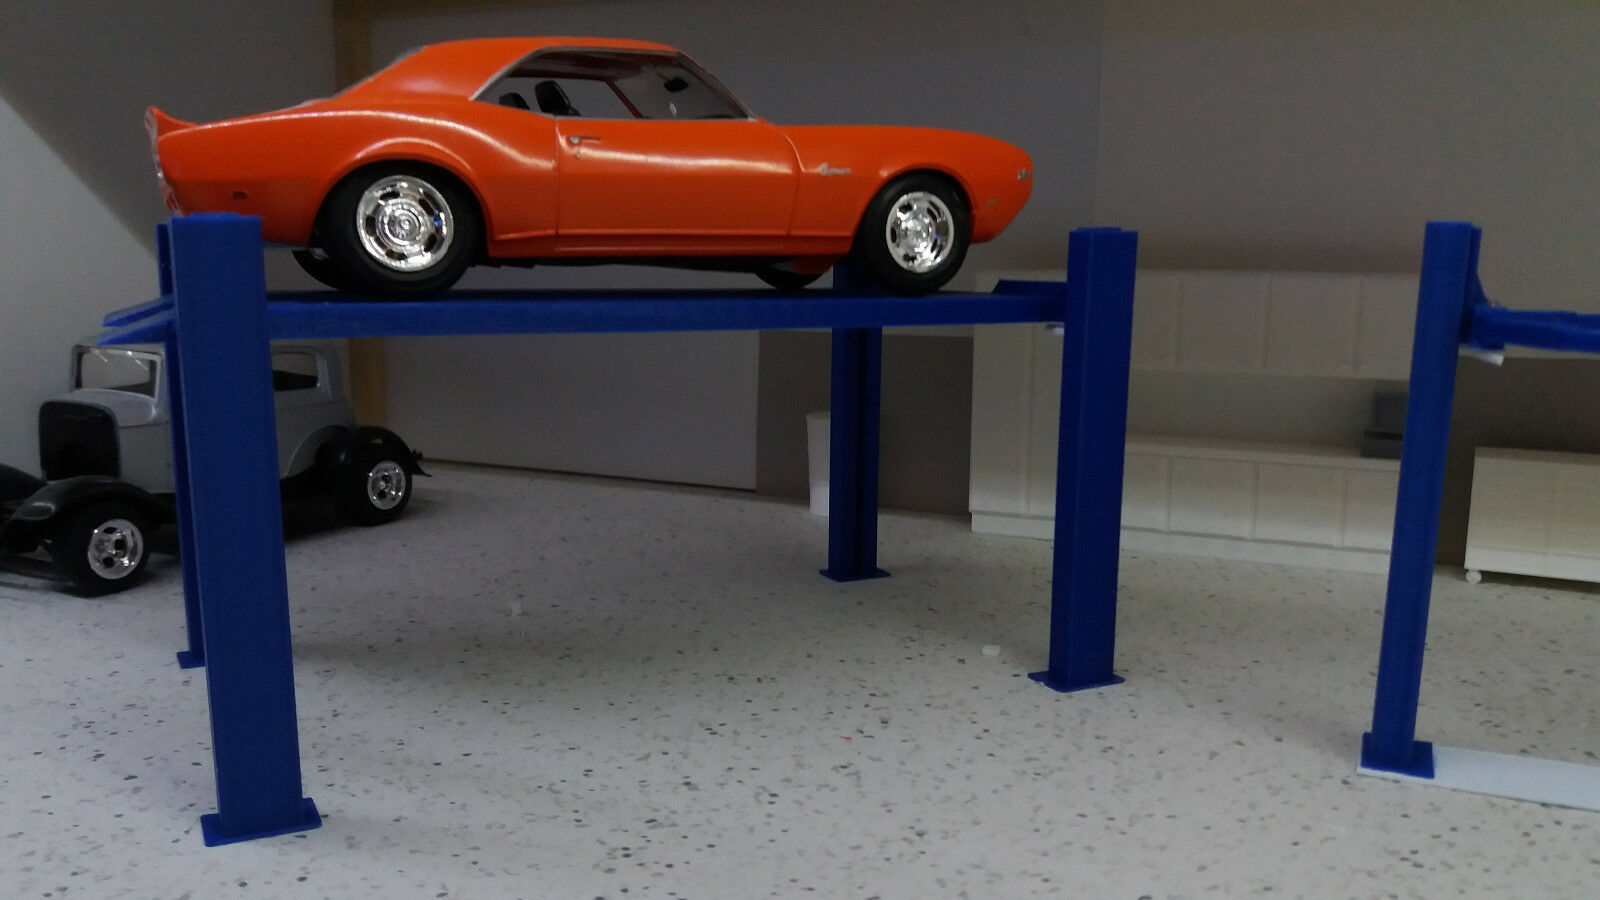 Car Parts - 4 post model car lift 1:24 1:25 scale Diorama